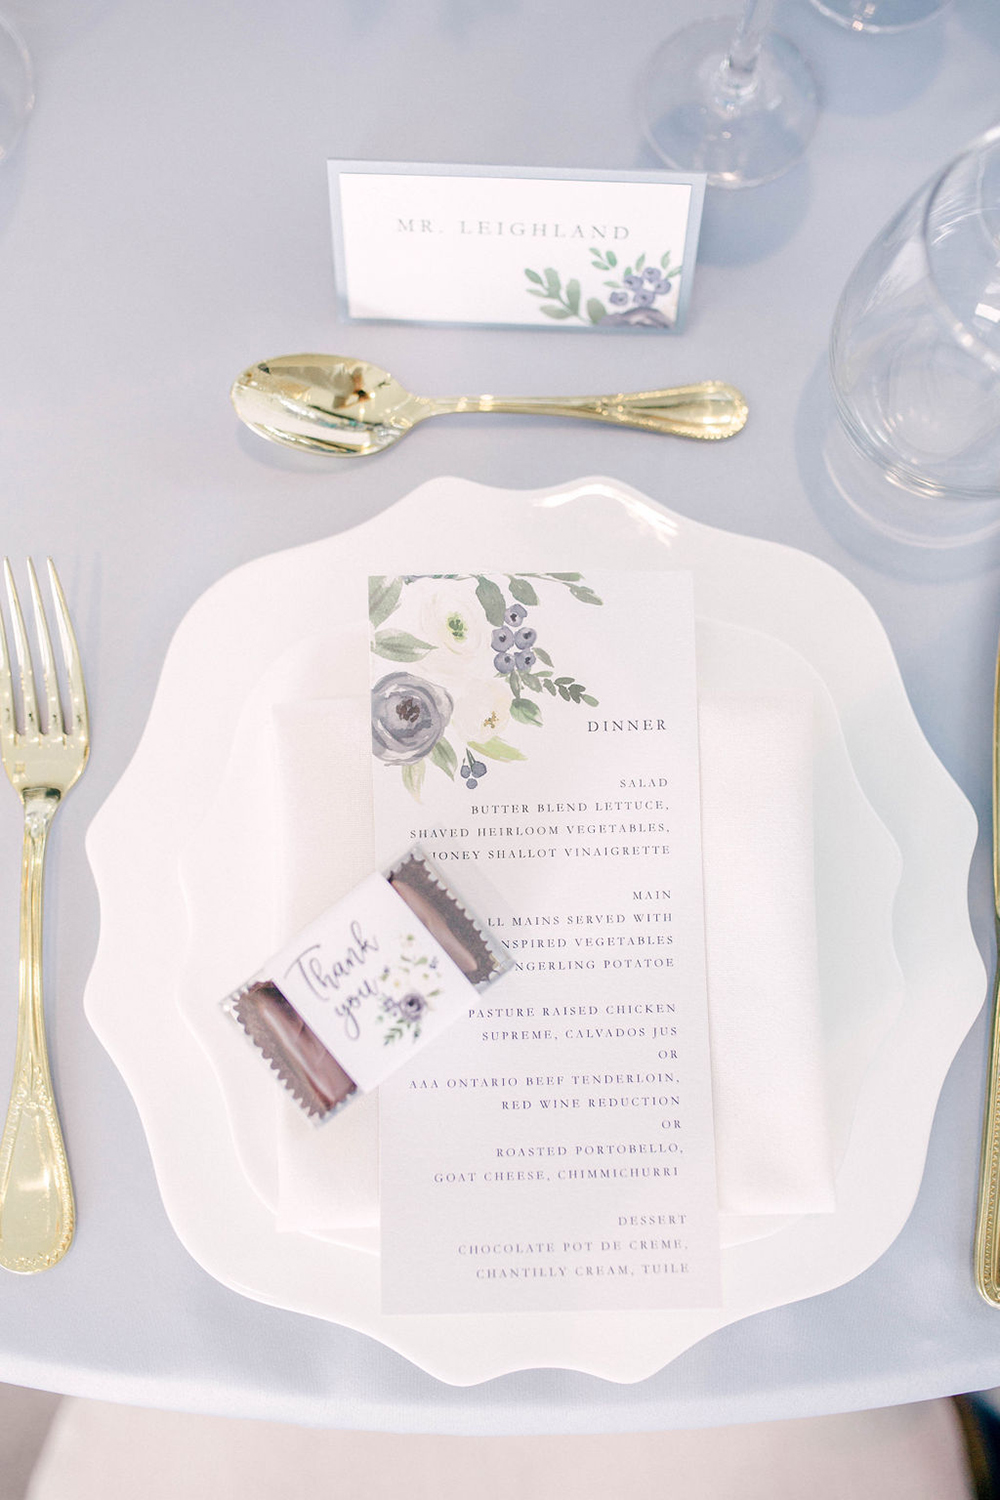 menu card with white and blue flowers with a matching thank you favour box sits on a ornate white plate